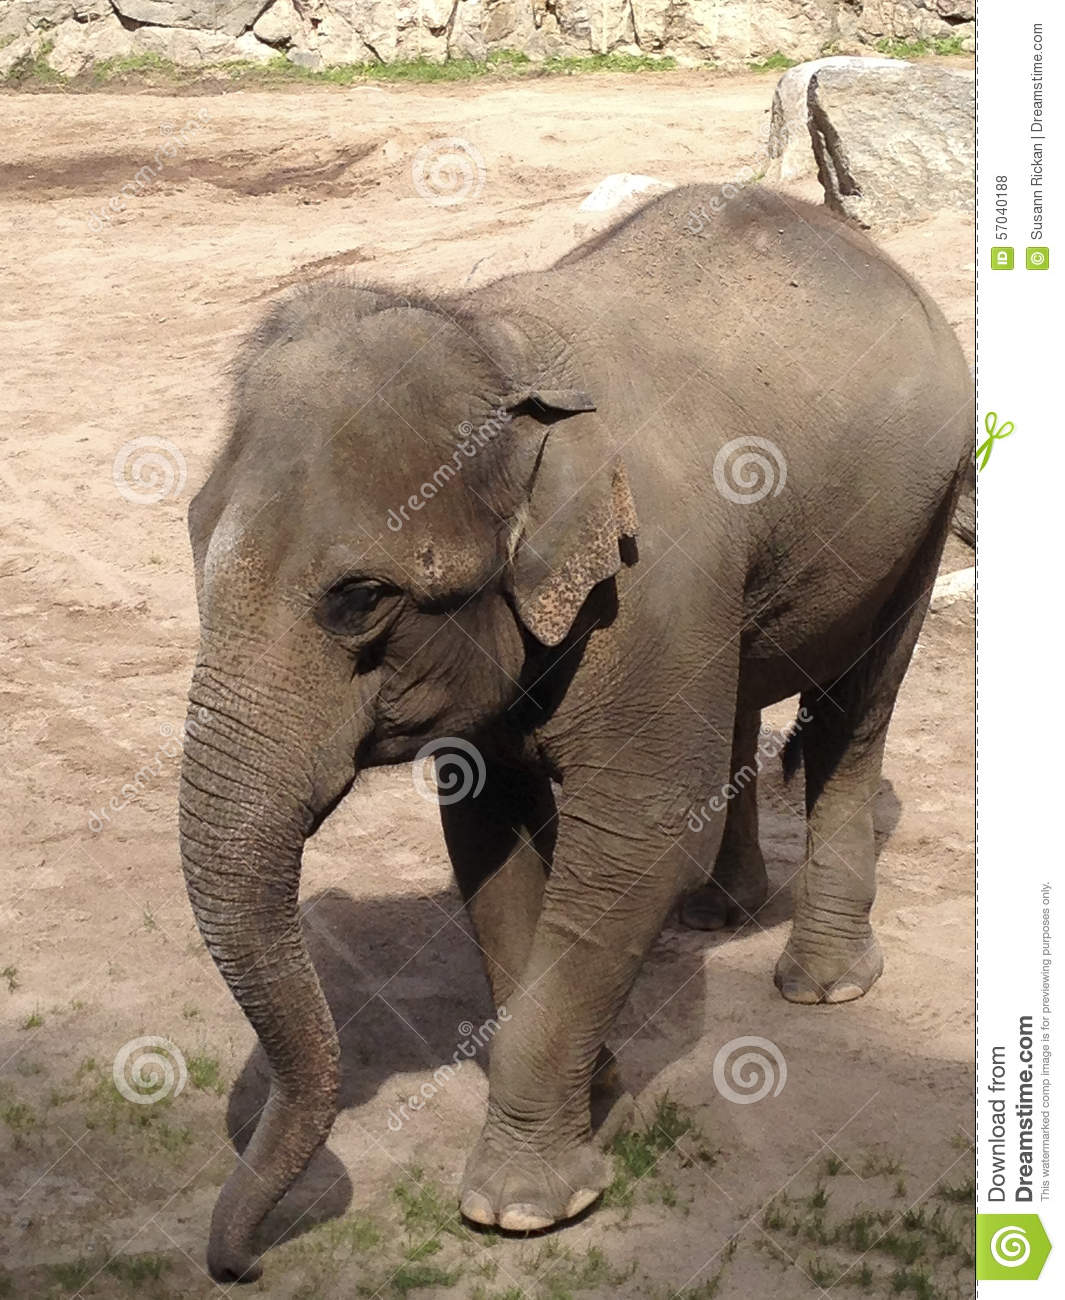 the stress of confinement to wild animals Sarily involve keeping animals in confinement, while at times studies involving  wild animals require that provision is made for trapping and  in research or  teaching involve exposure to painful, stressful or noxious stimuli.